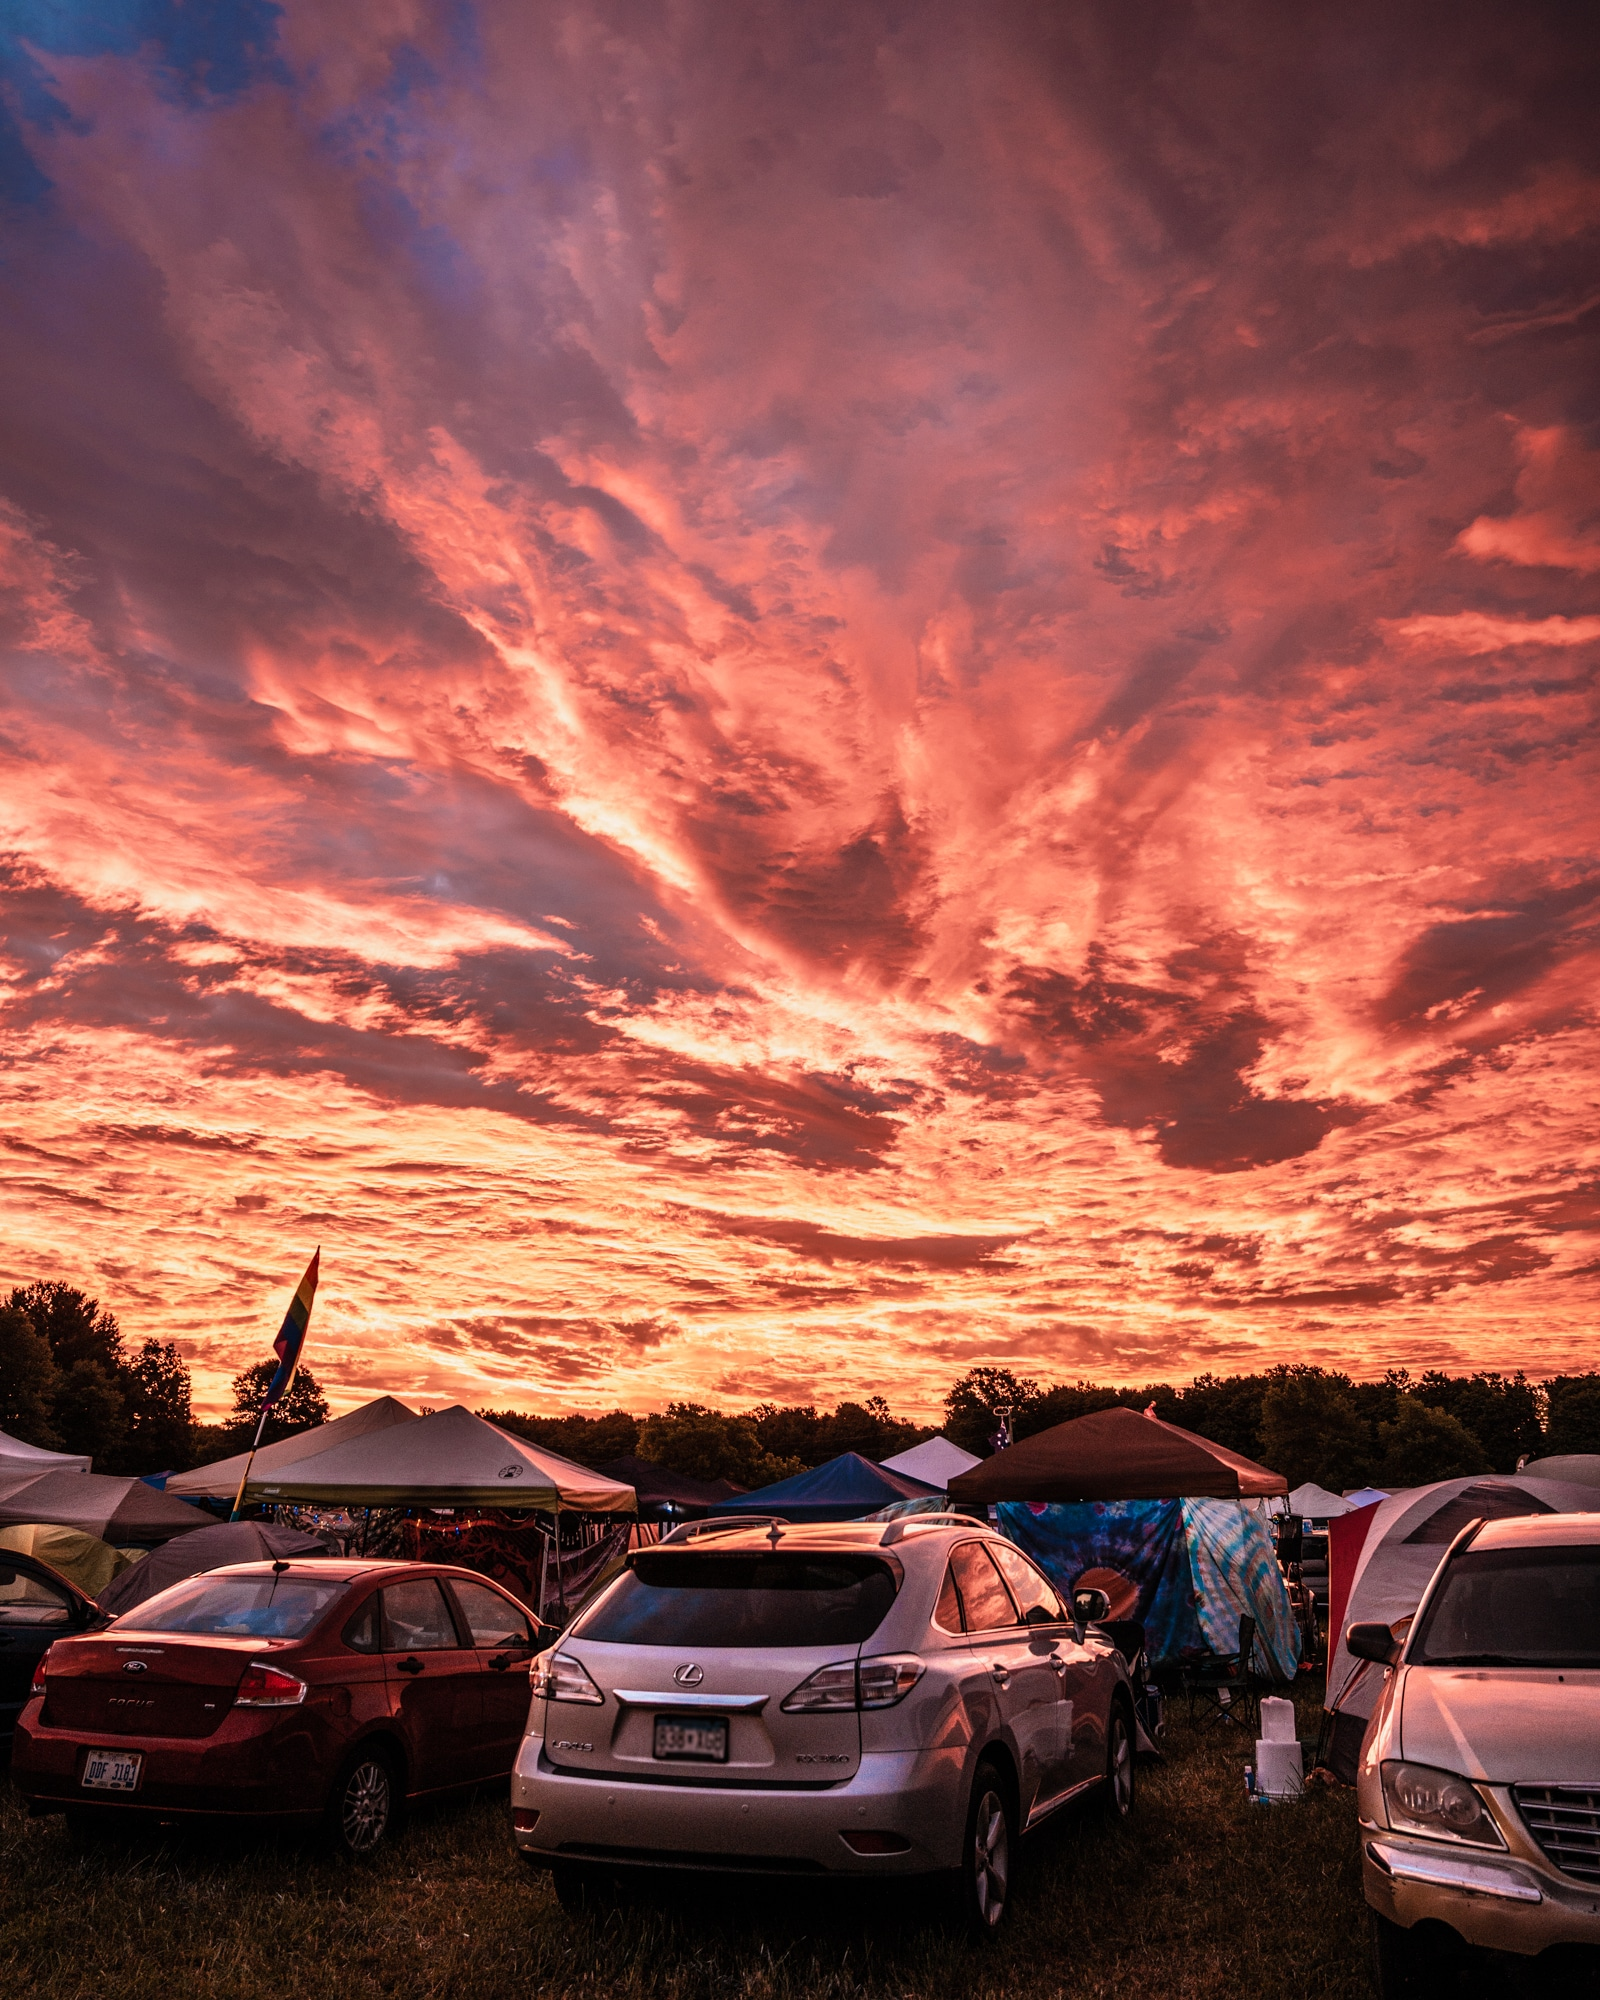 Friday Sunrise at Music In MN's Camp - Photo by Chris Taylor